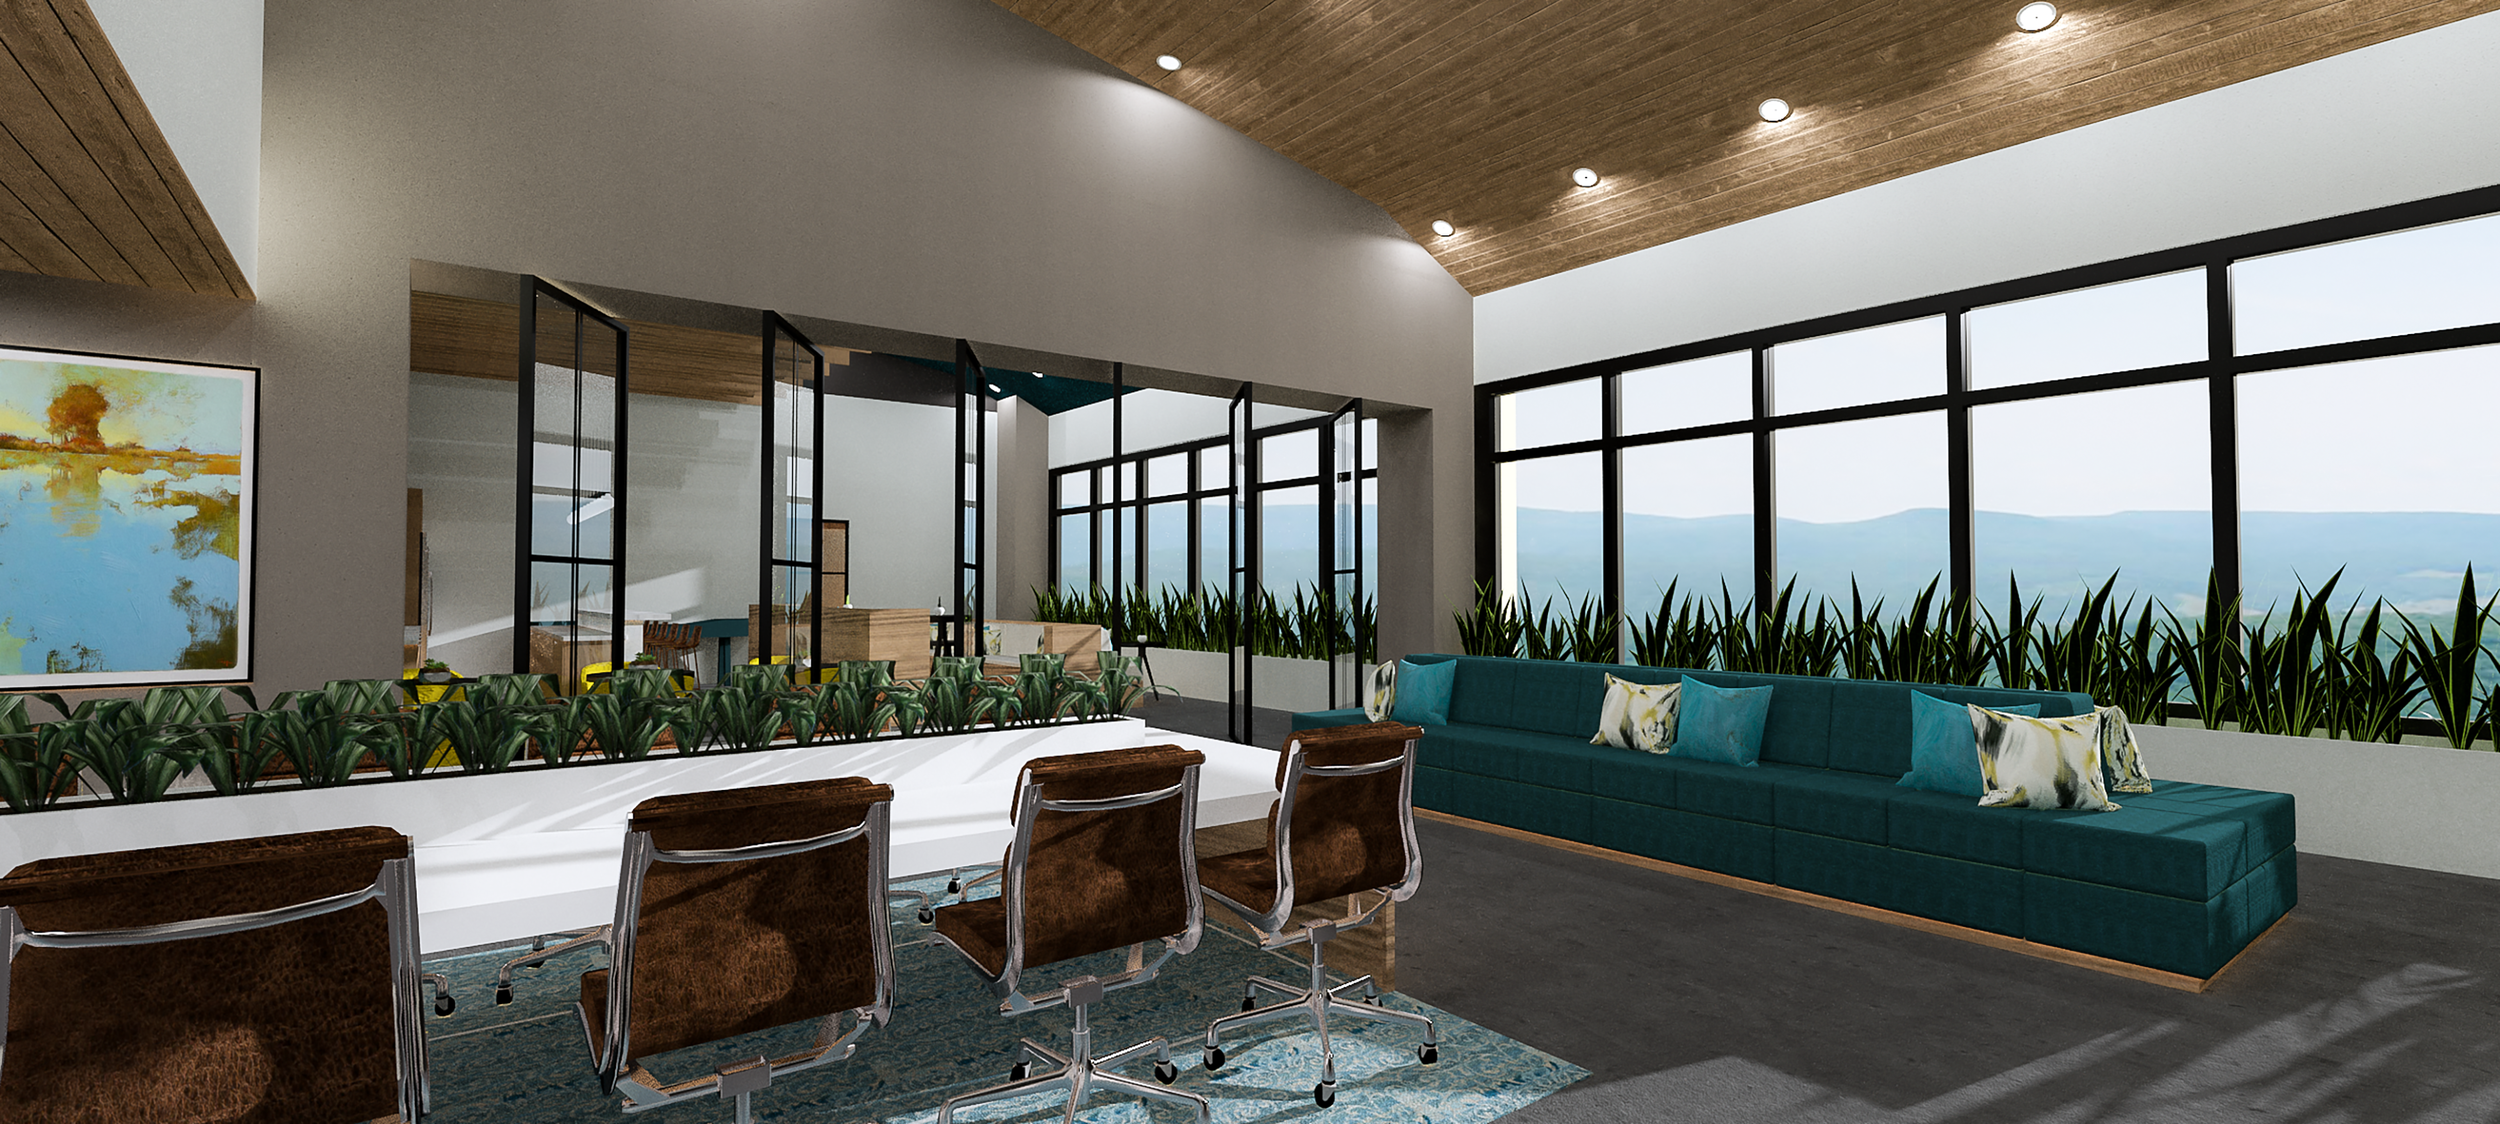 California Office | Designed by  Antoinette Designs | Rendered by Kelly Fridline Design using Chief Architect X10